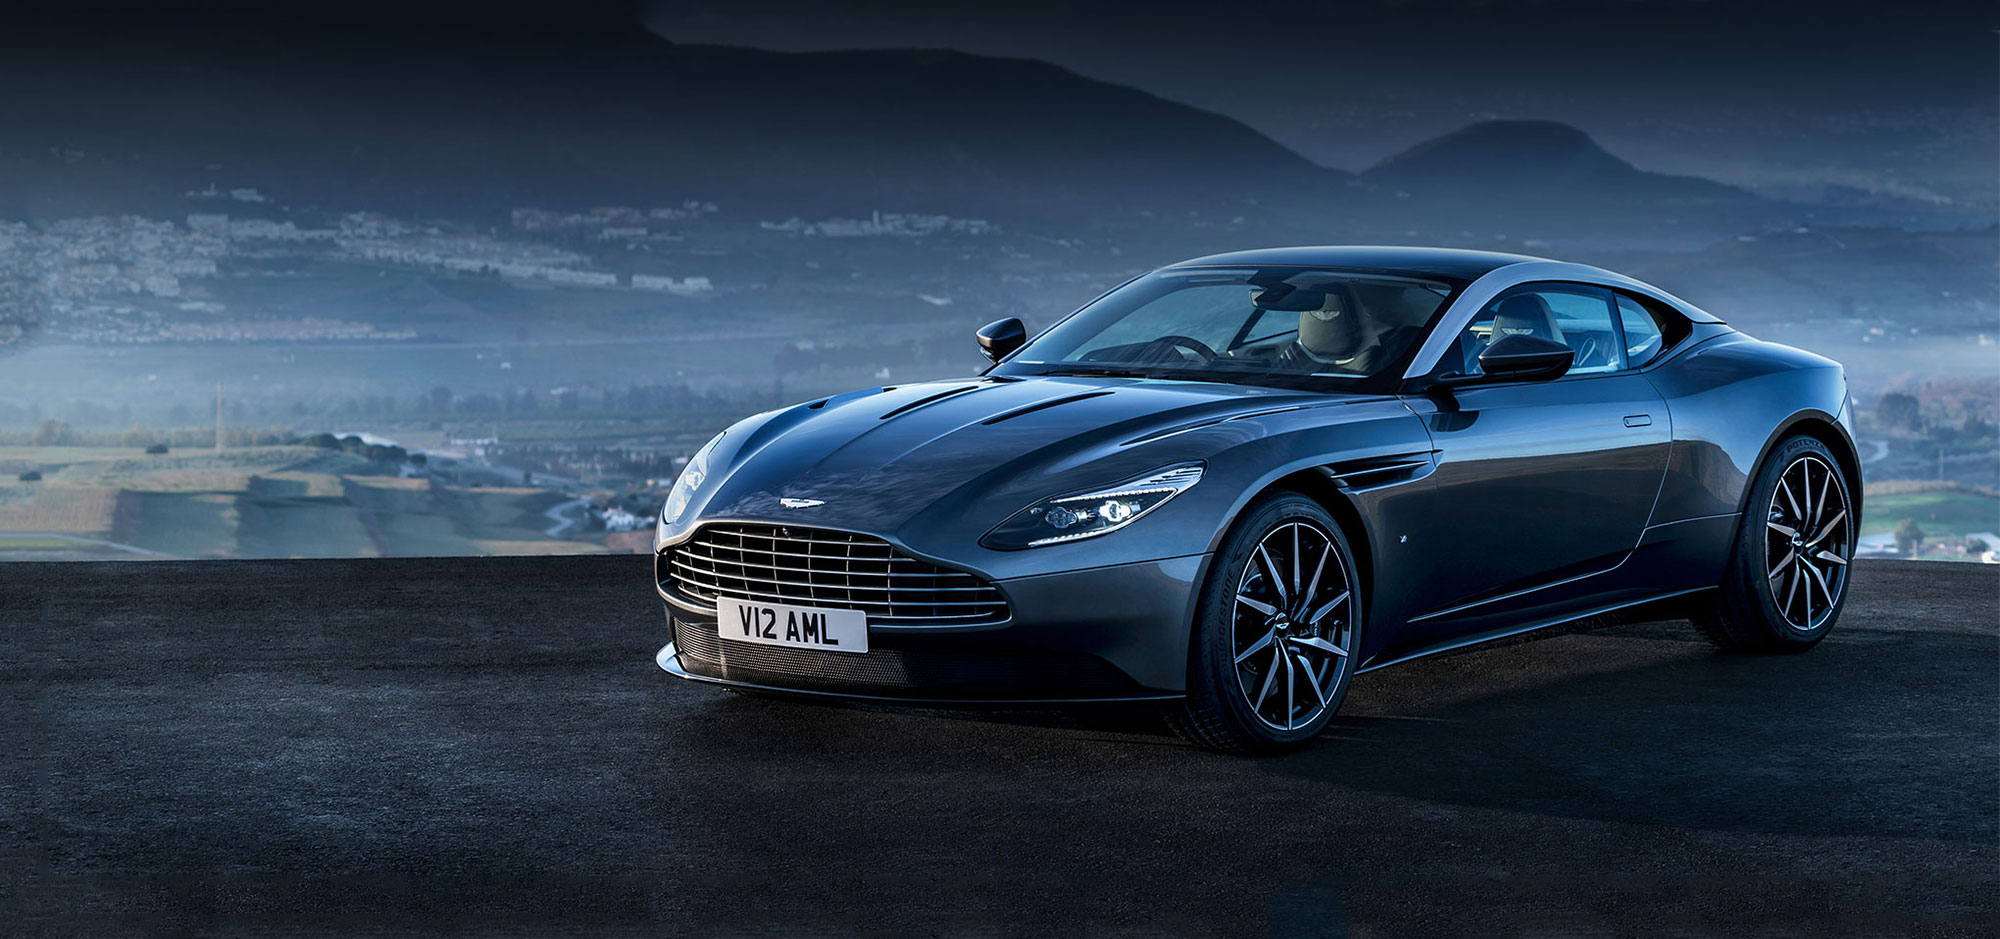 Aston Martin unveils the new DB11 - Enquire at Grange Aston Martin now